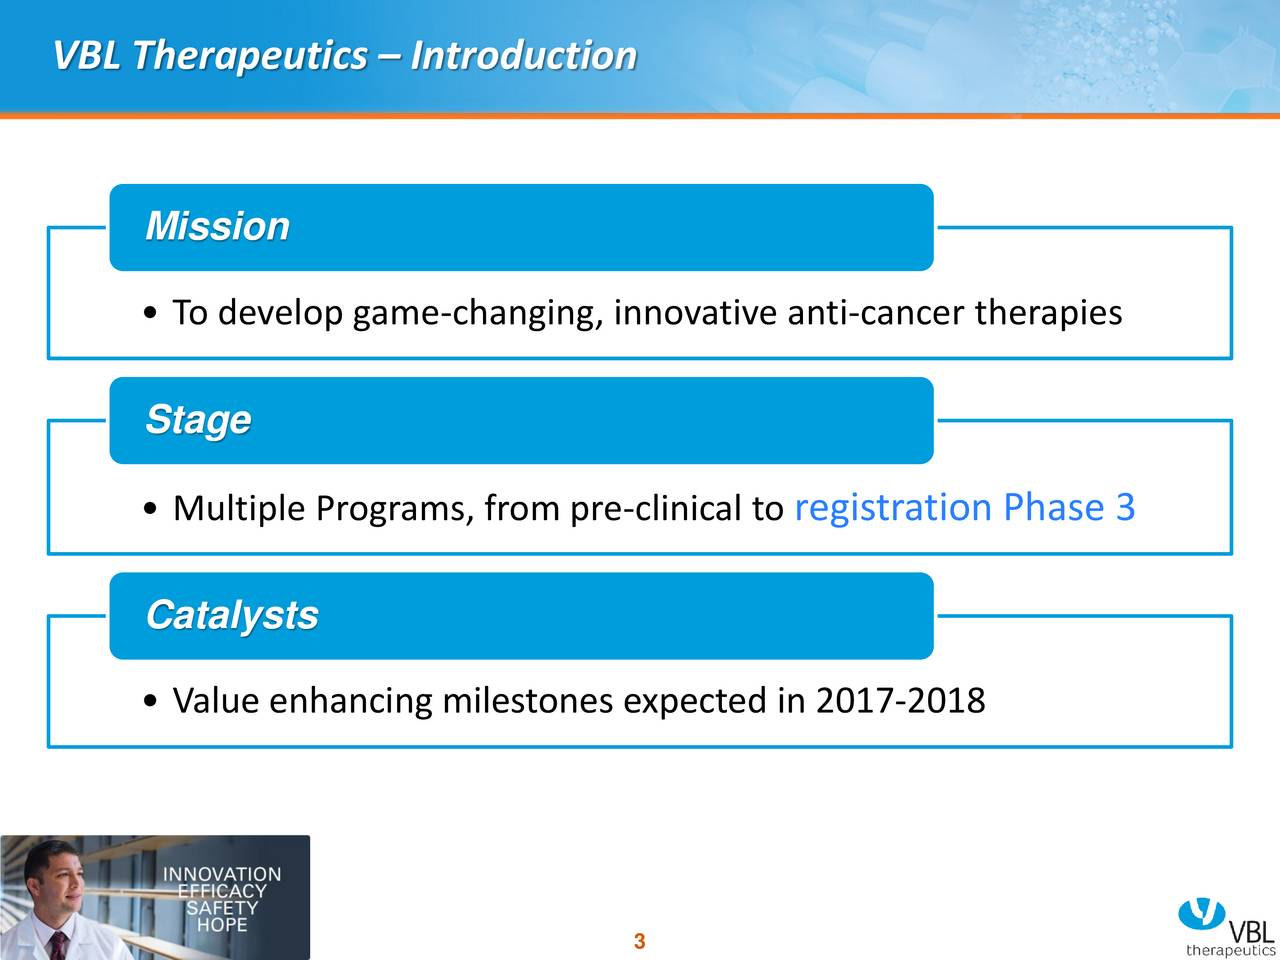 Mission To develop game-changing, innovative anti-cancer therapies Stage Multiple Programs, from pre-clinical registration Phase 3 Catalysts Value enhancing milestones expected in 2017-2018